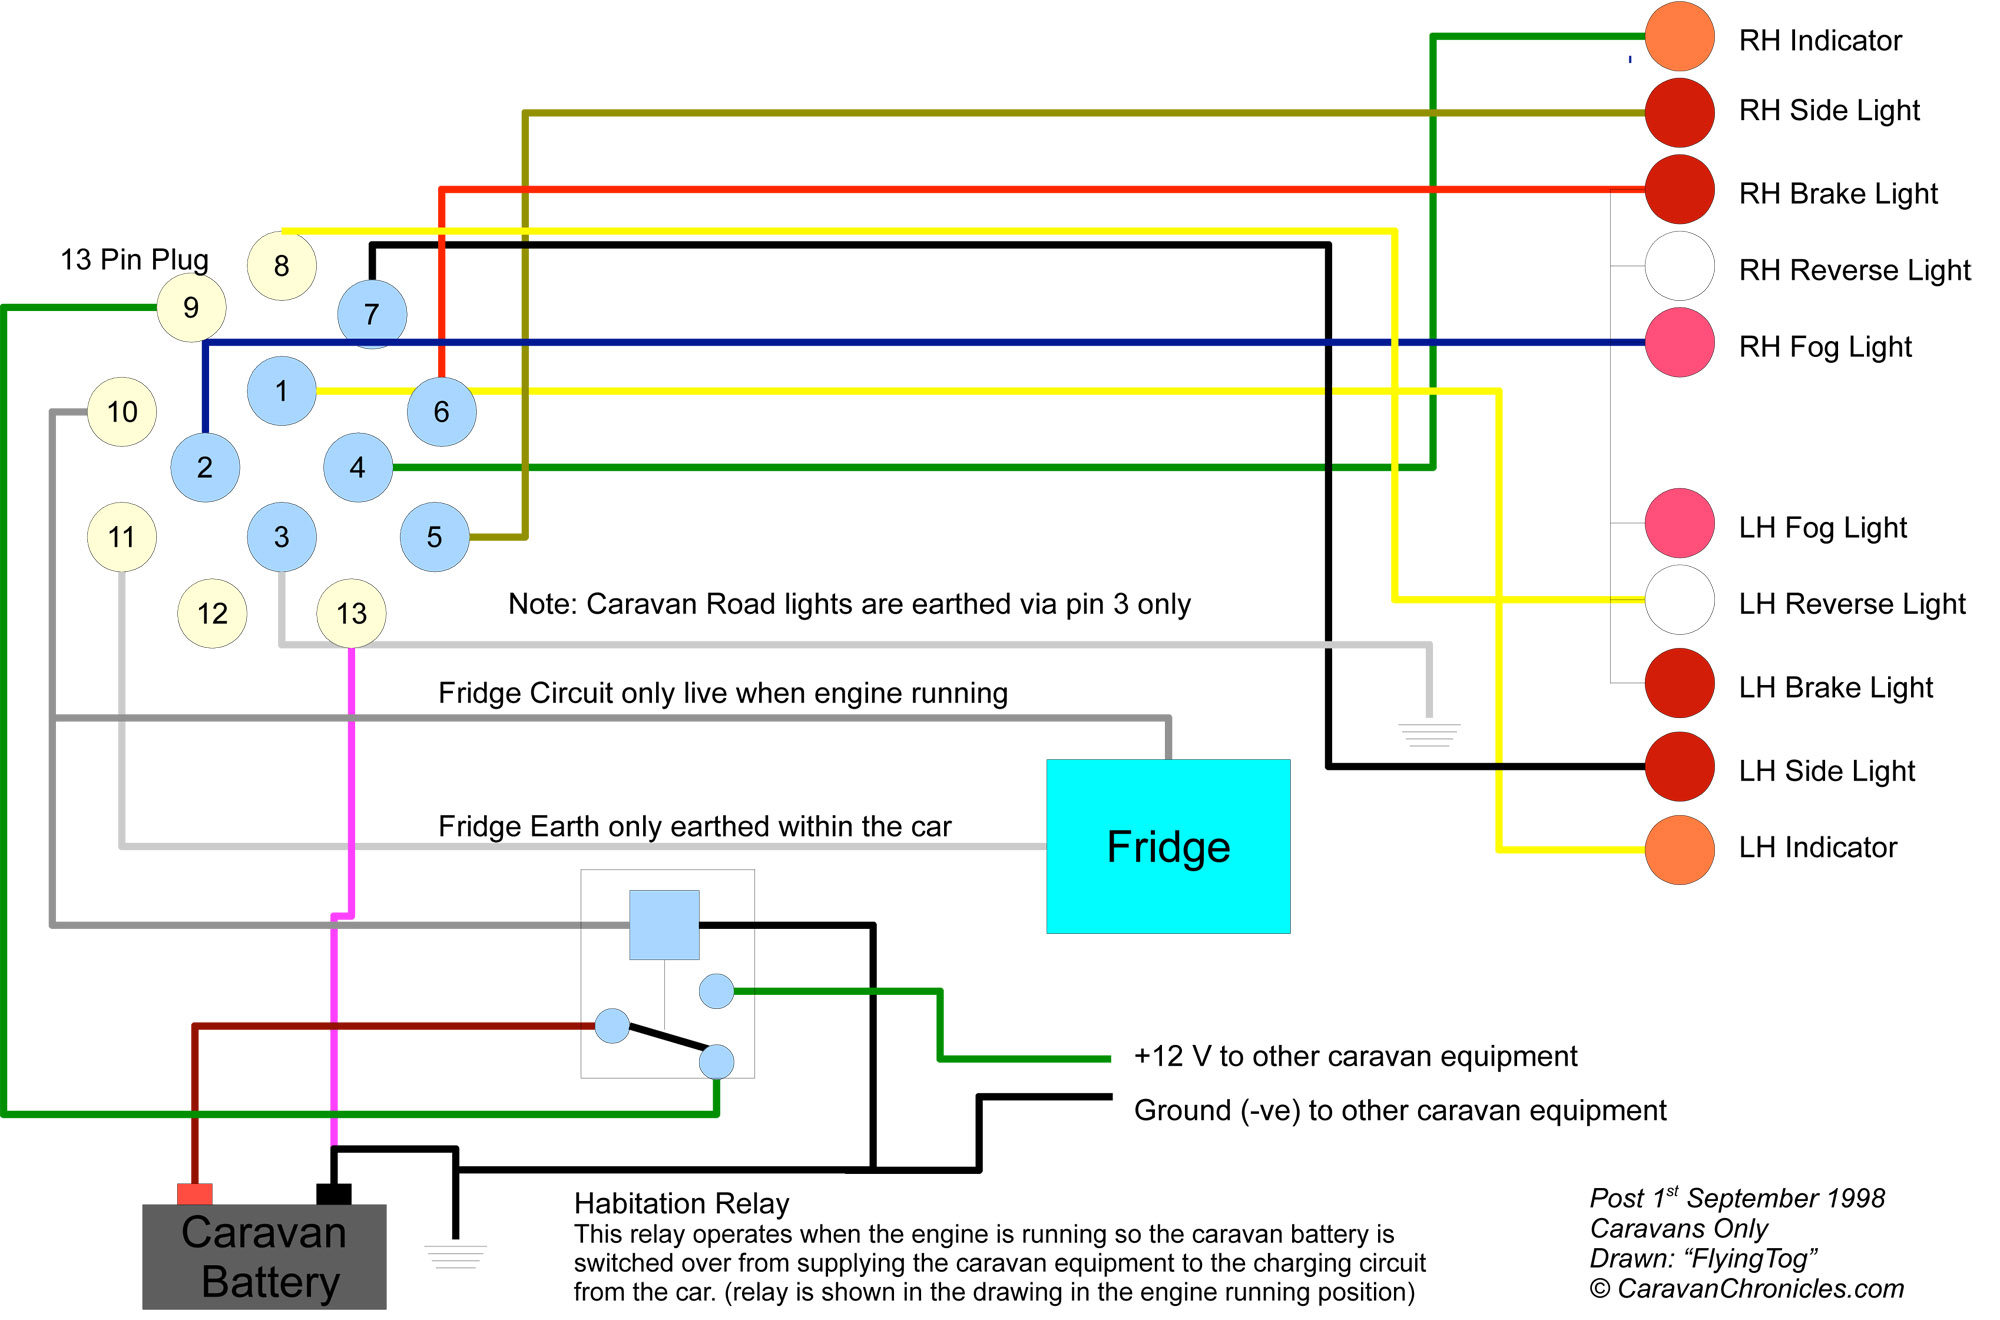 caravan wiring 13 pin understanding caravan and tow car electrics caravan chronicles jayco 12 pin trailer plug wiring diagram at reclaimingppi.co